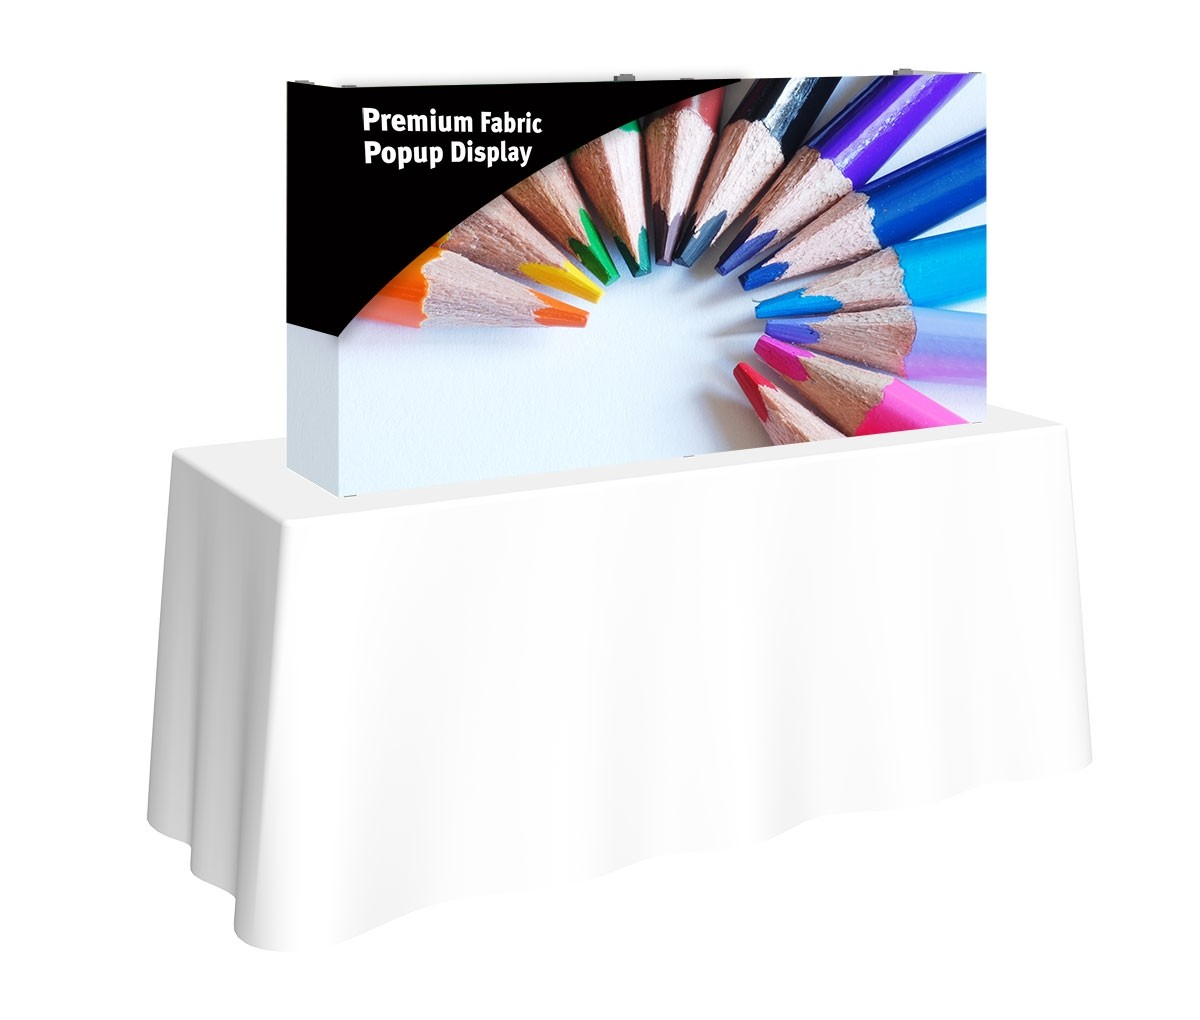 Premium Fabric Popup 5' x 2.5' Table Top Display